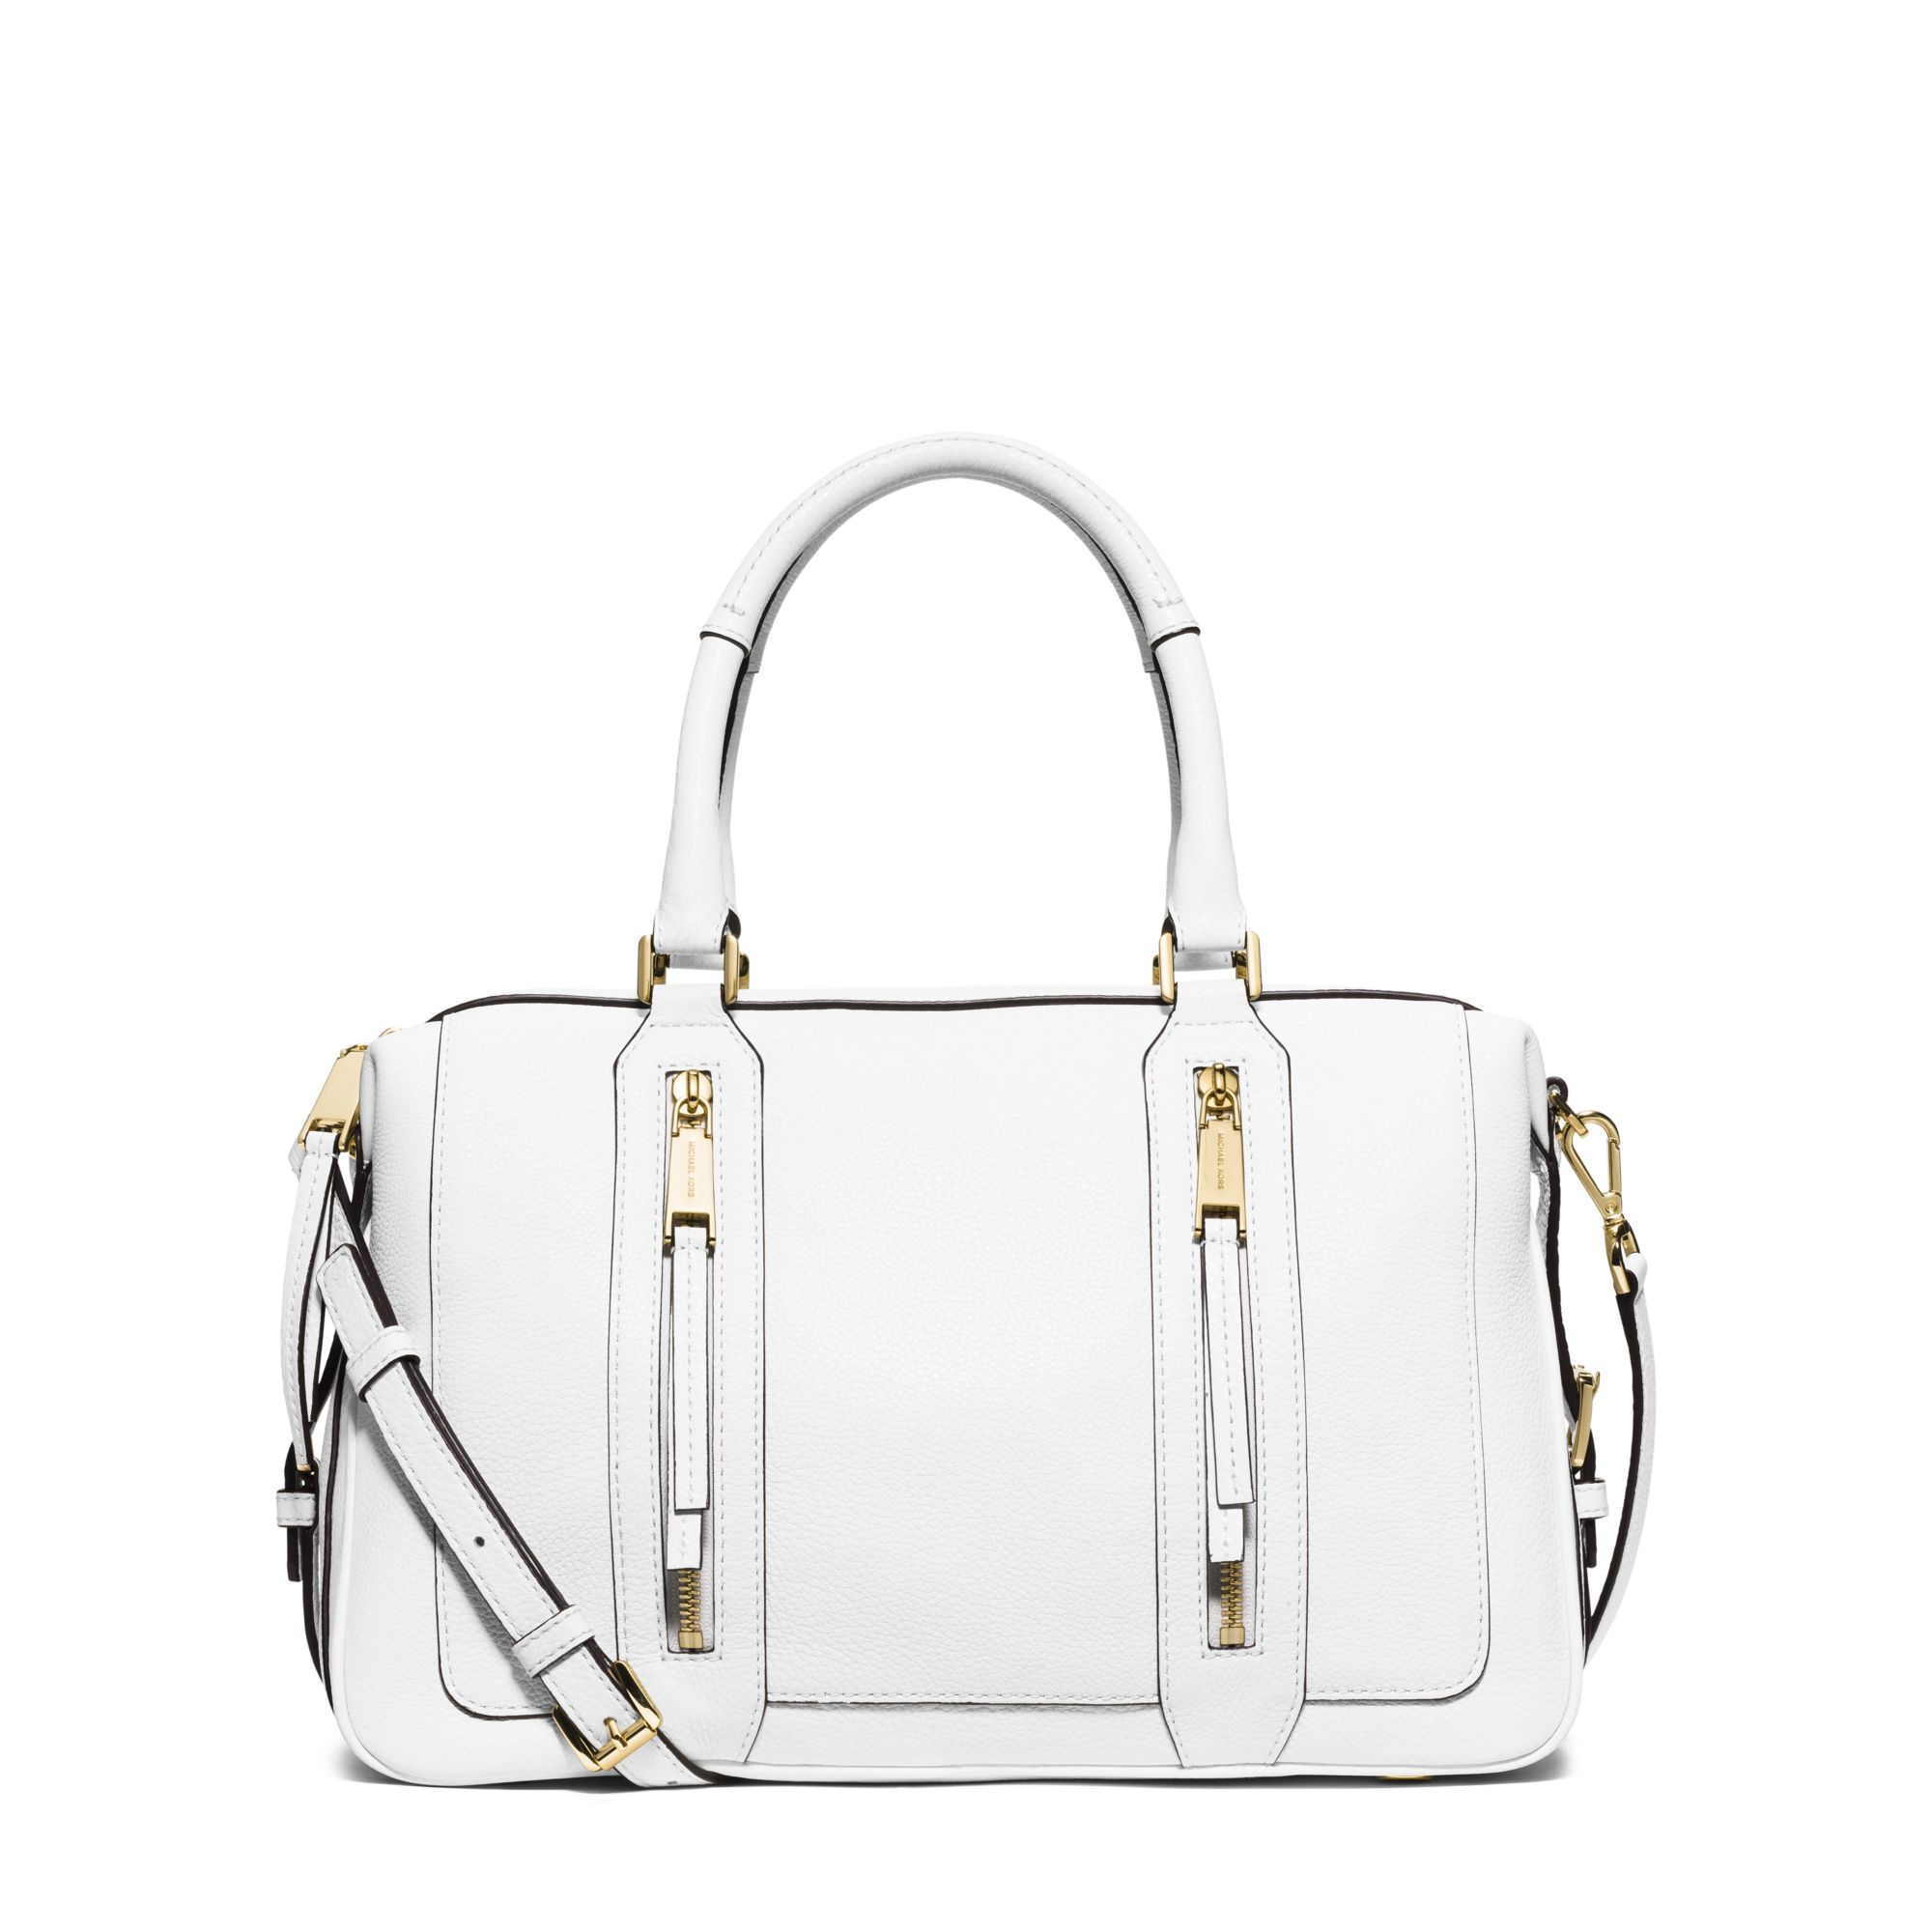 lyst michael kors julia large leather satchel in white rh lyst com